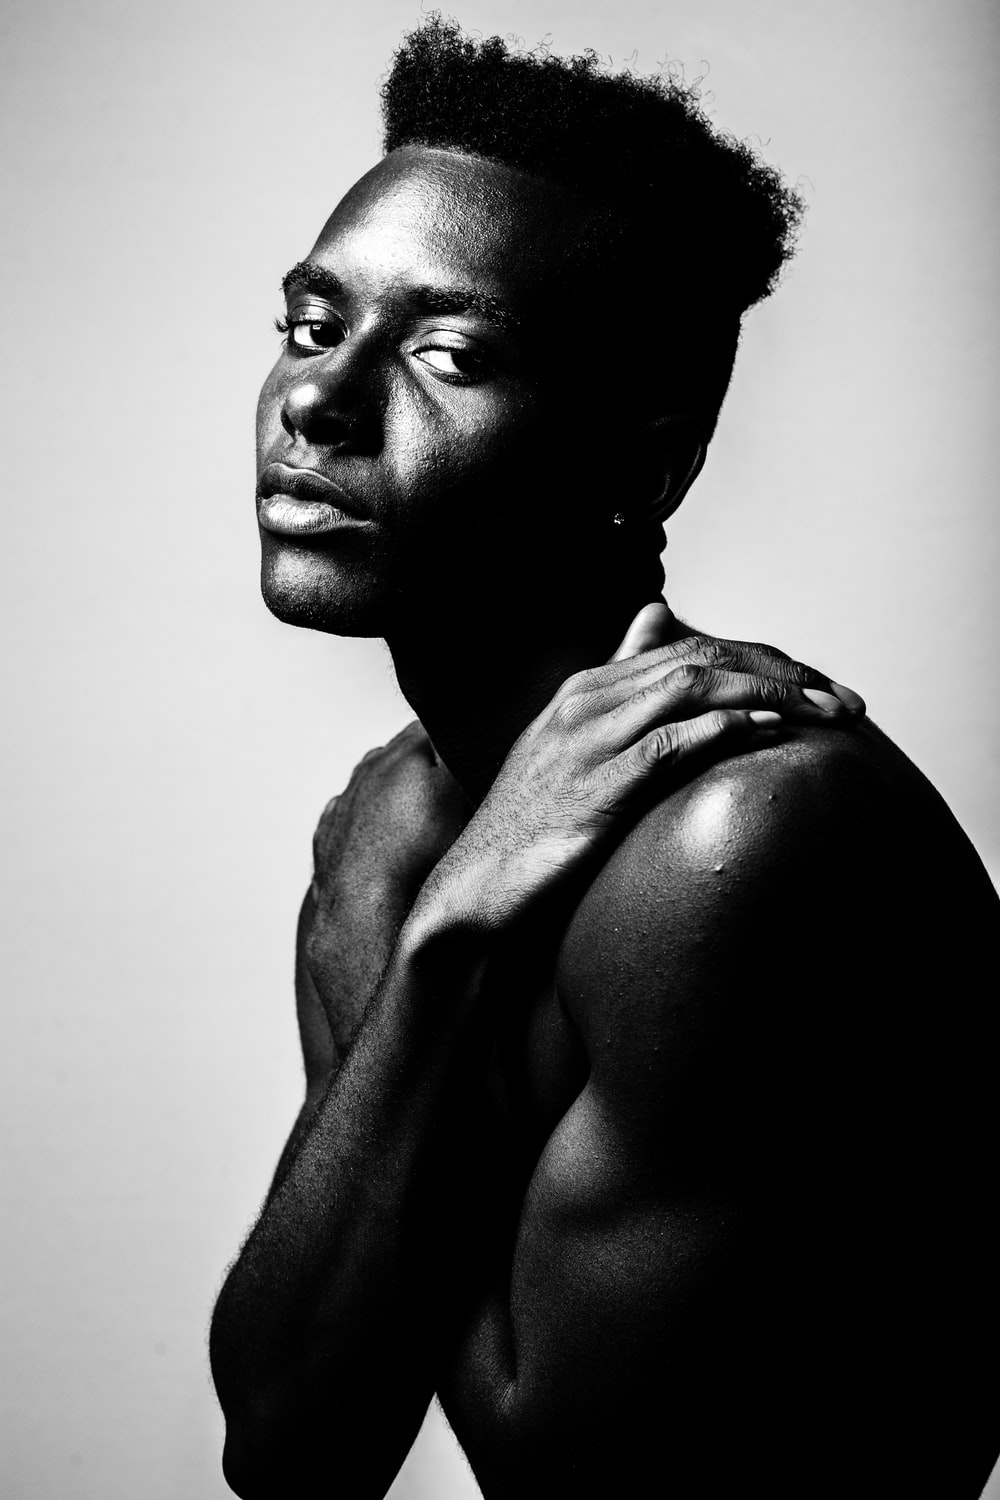 grayscale photography of man